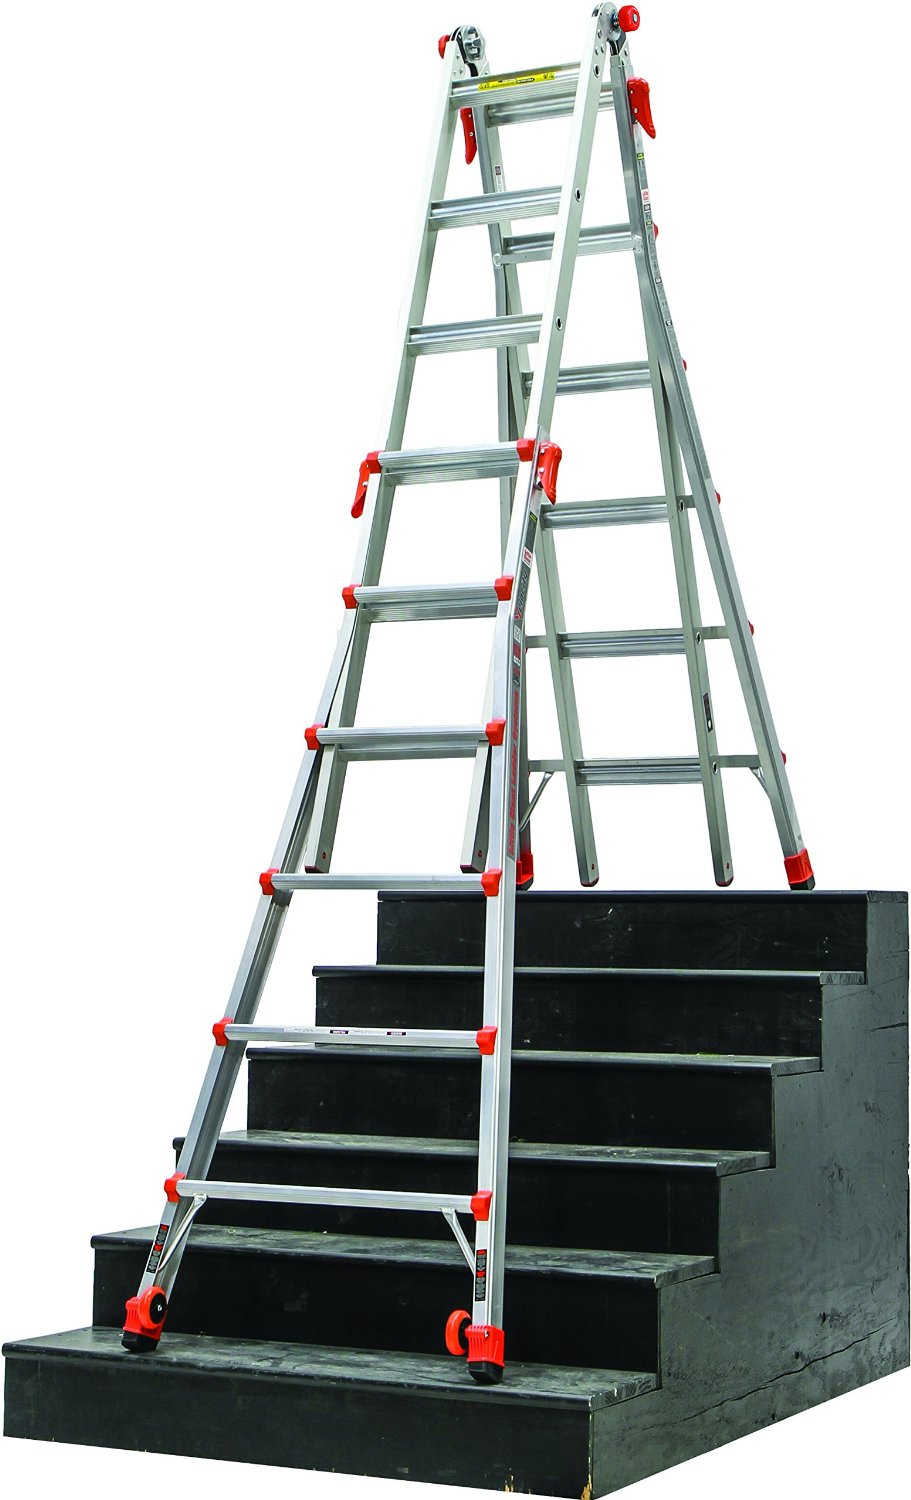 26 1a Velocity Little Giant Ladder 15426 001 300lb Rating